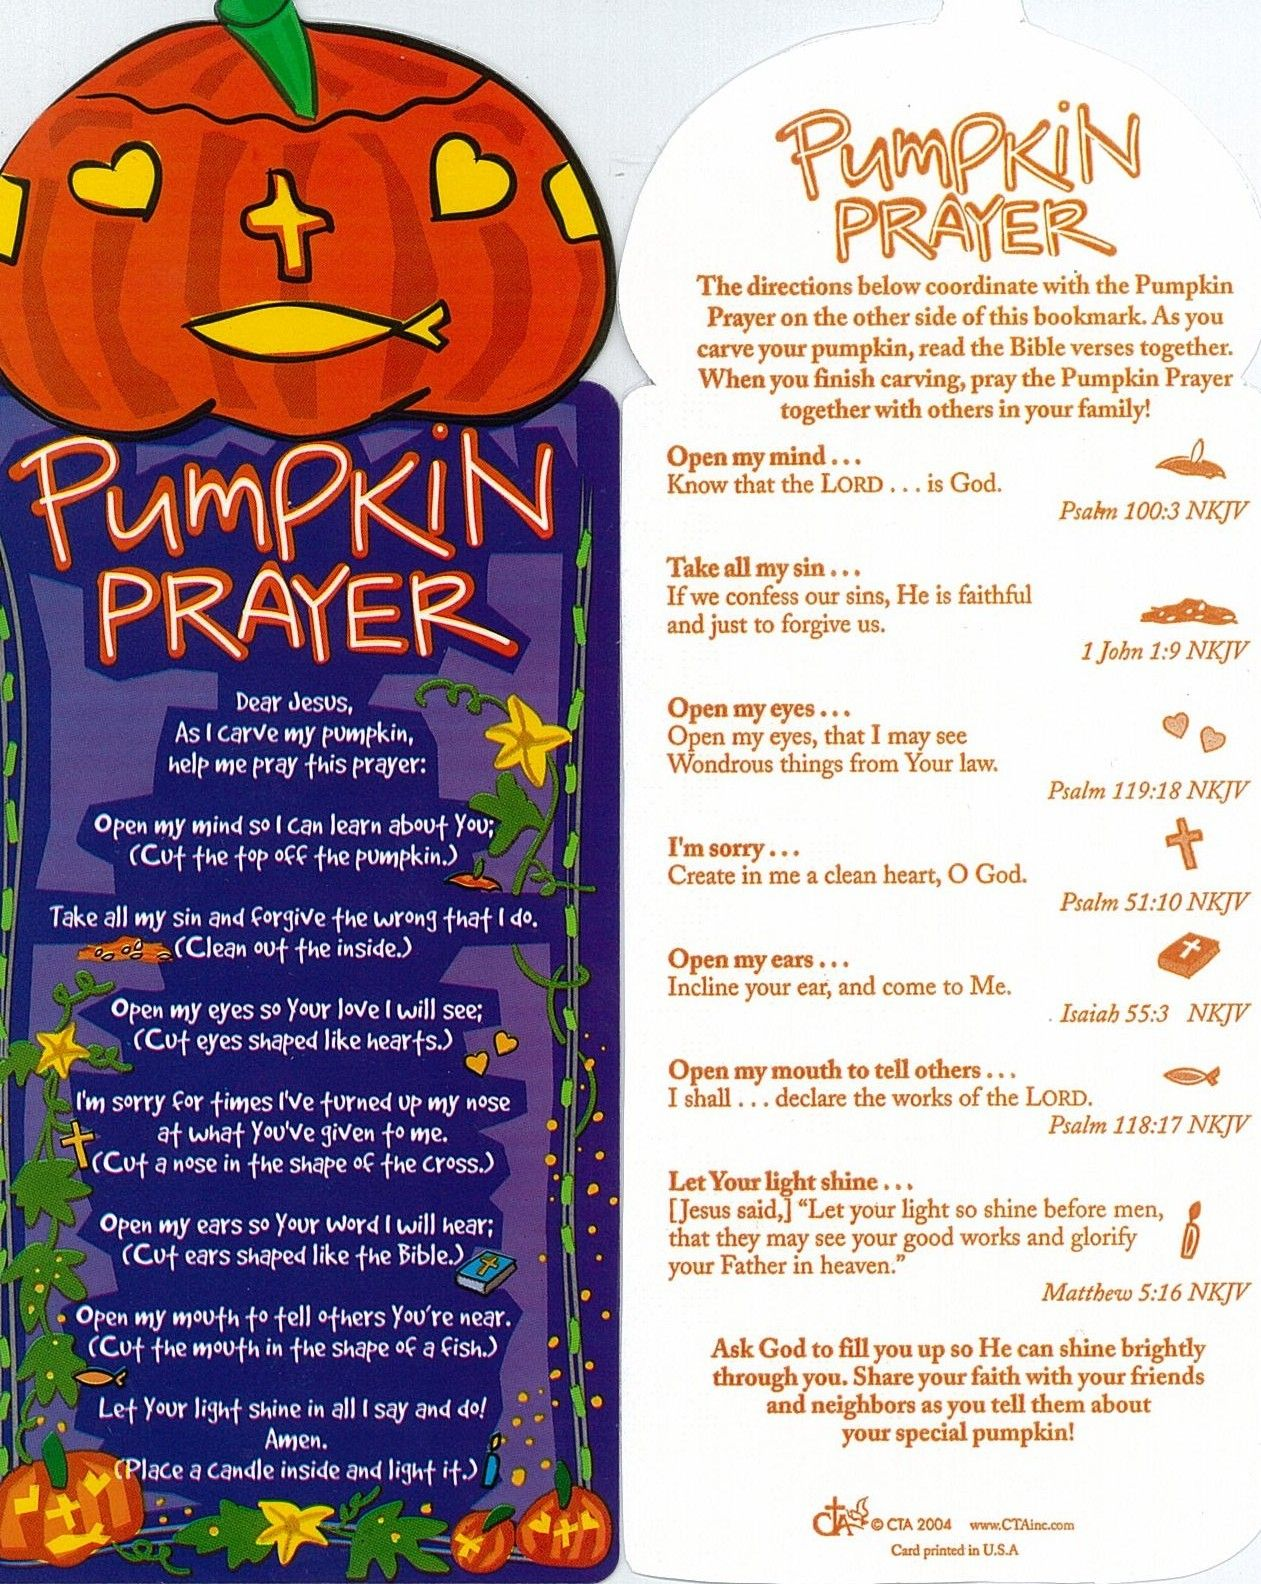 Pumpkin Prayer To Accompany Carving With Images Church Lessons